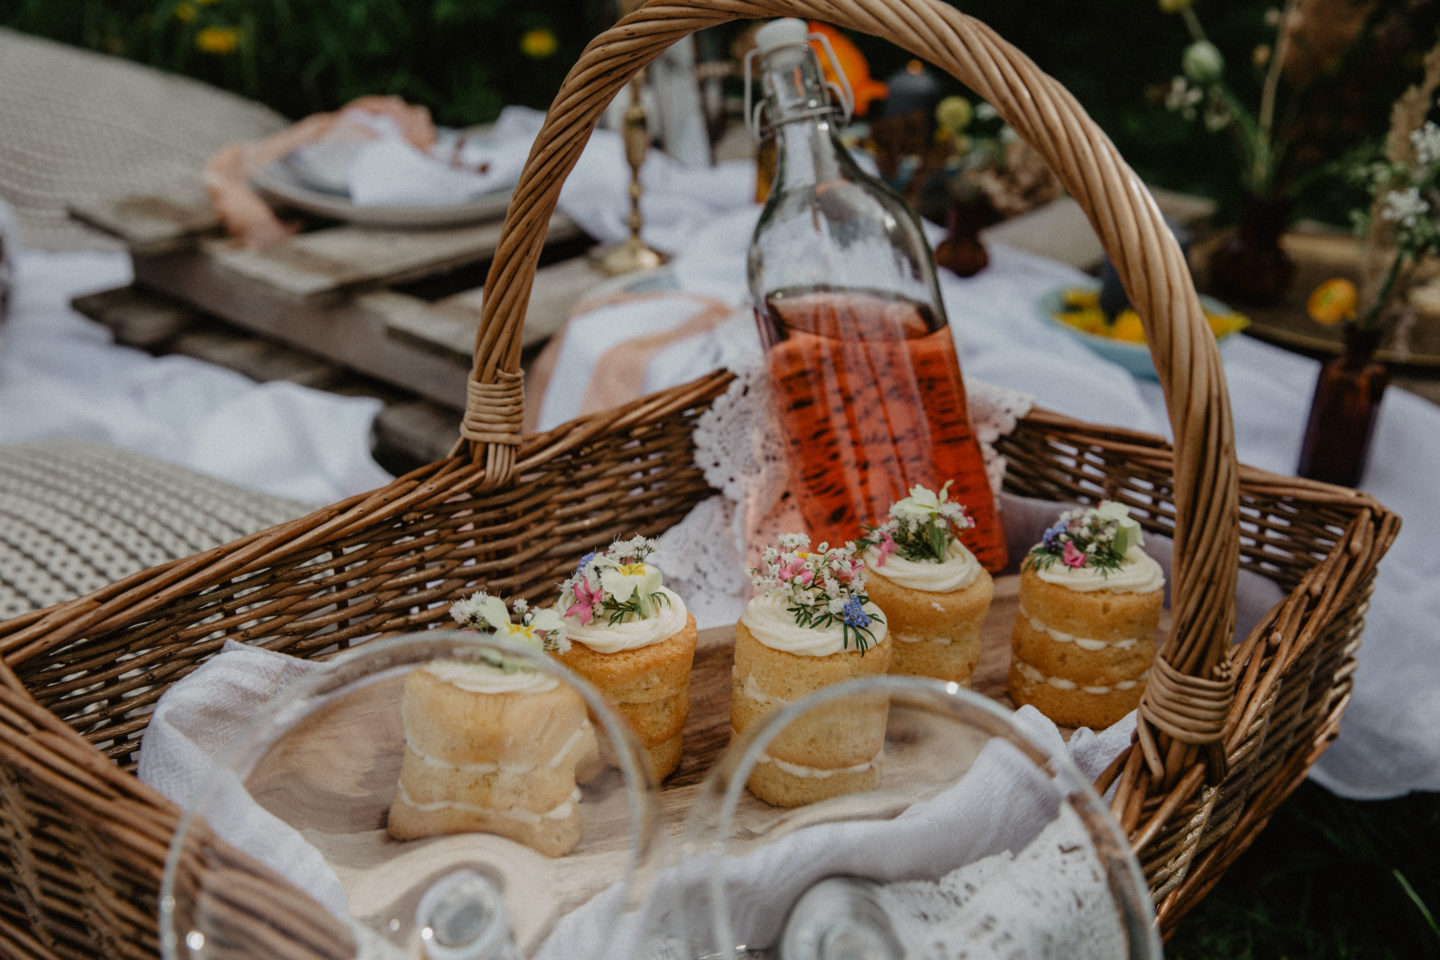 Romantic Styling Ideas For Small Intimate Weddings - PICNIC